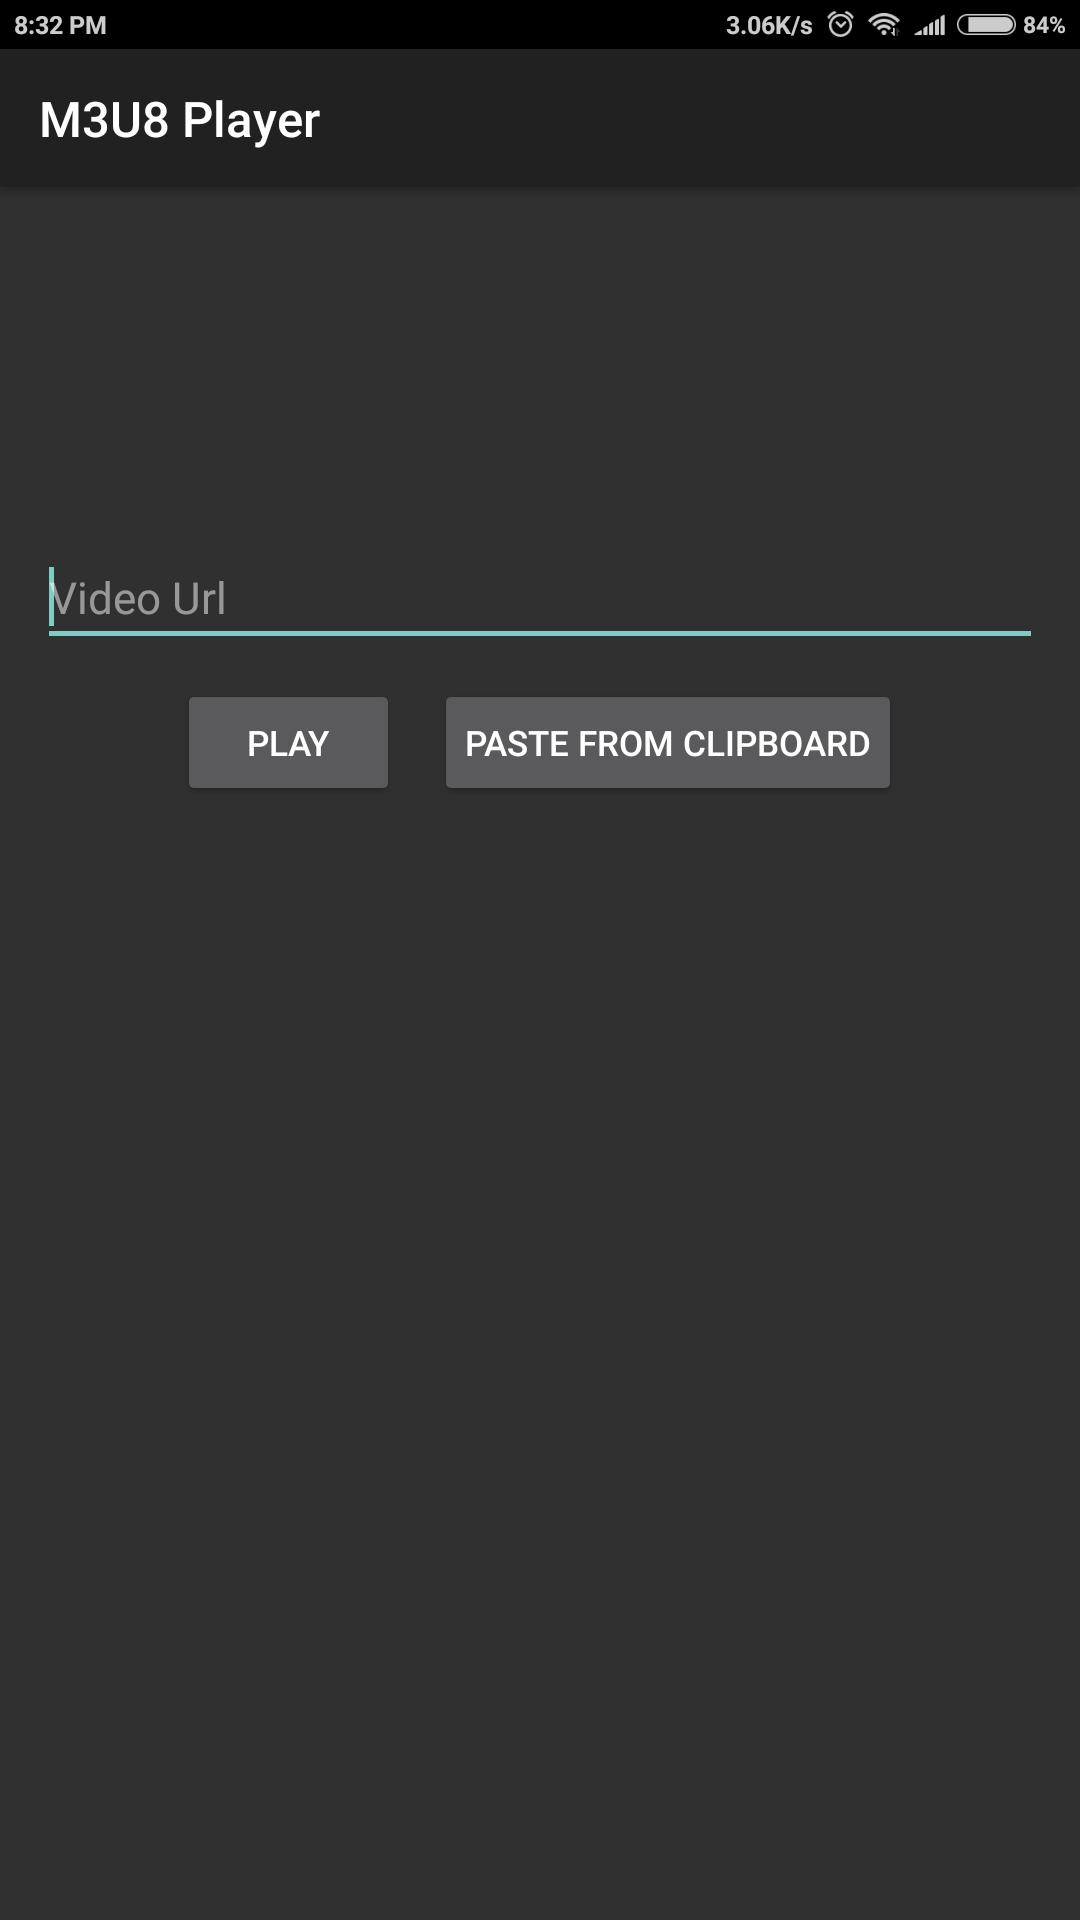 M3U8 Player for Android - APK Download